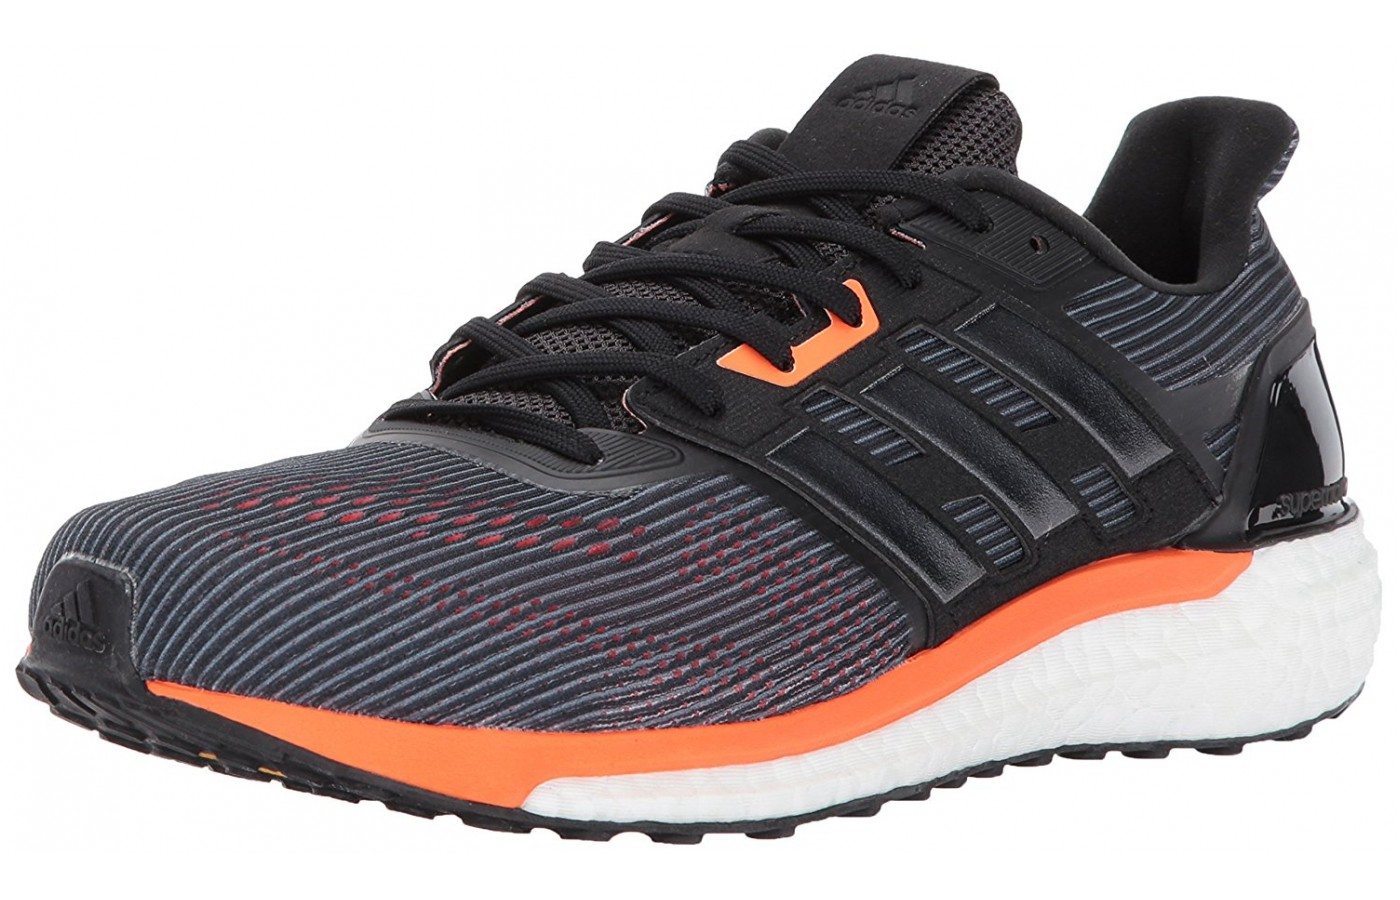 Adidas Supernova Reviewed & Tested for Performance